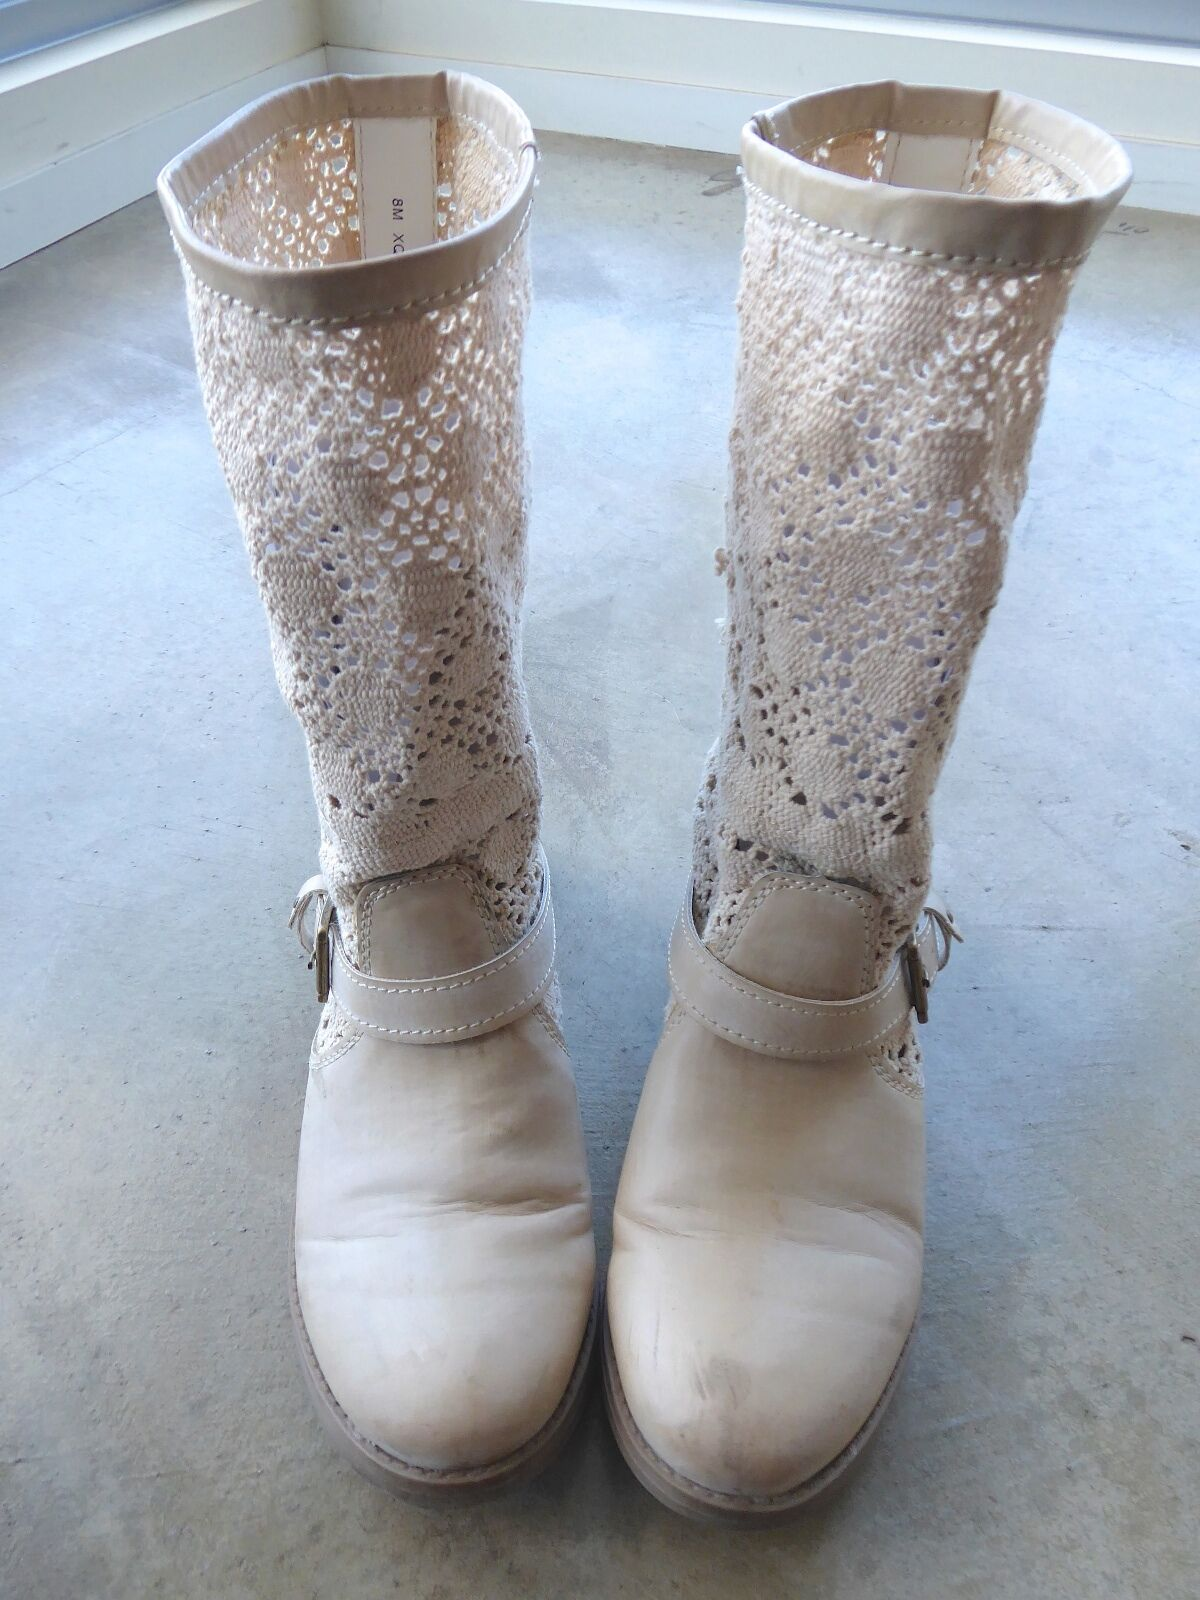 Creme colord Faux Leather Biker Boots and Heavy Lace women's size 8